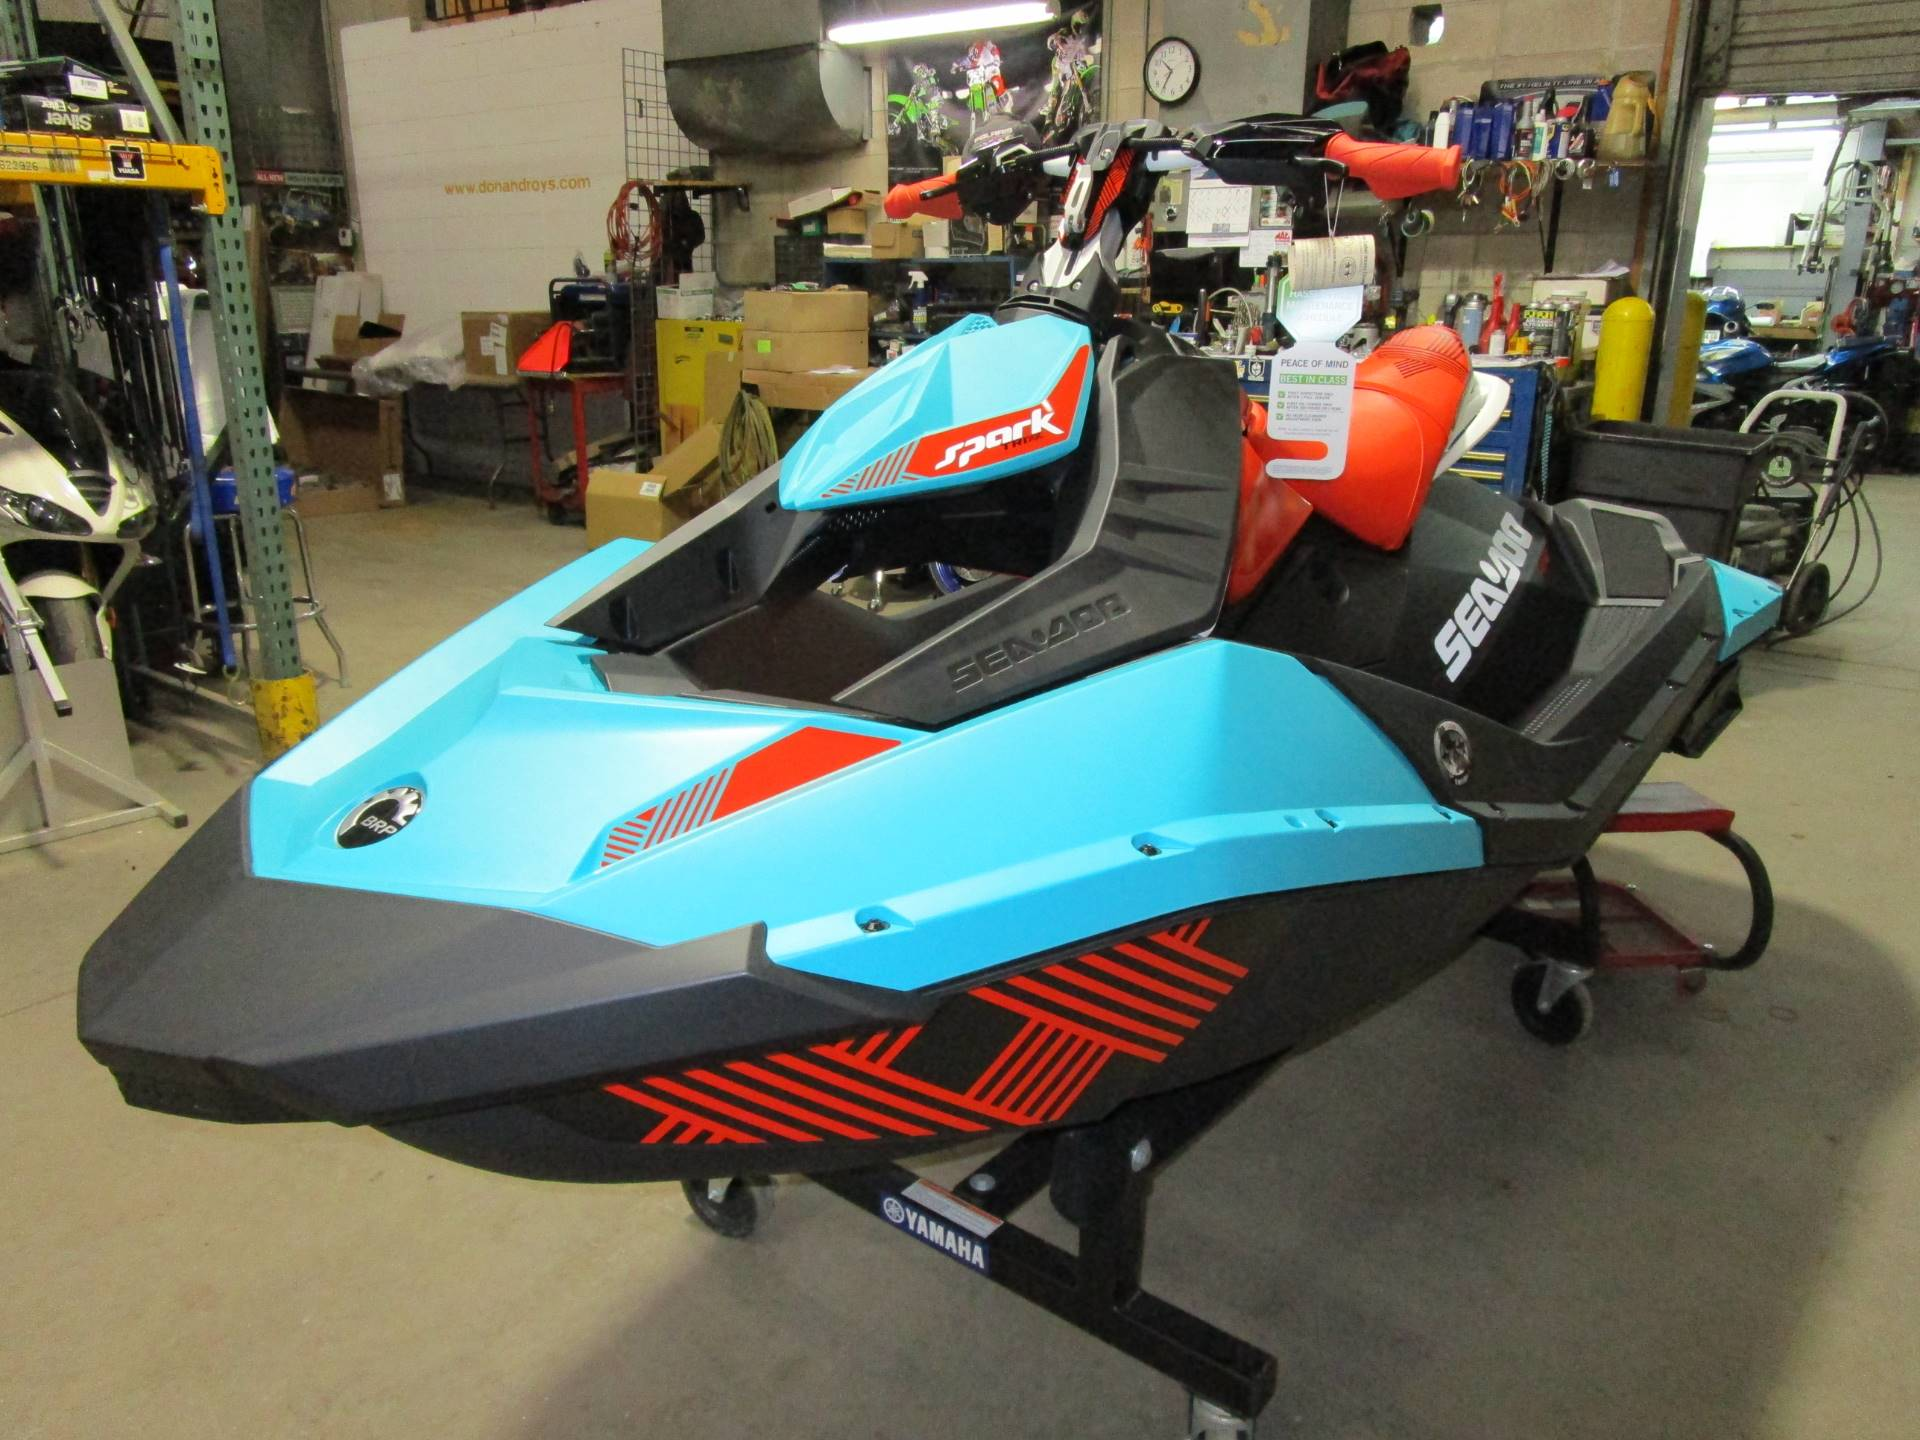 2017 Sea-Doo Spark 2up Trixx iBR in Brookfield, Wisconsin